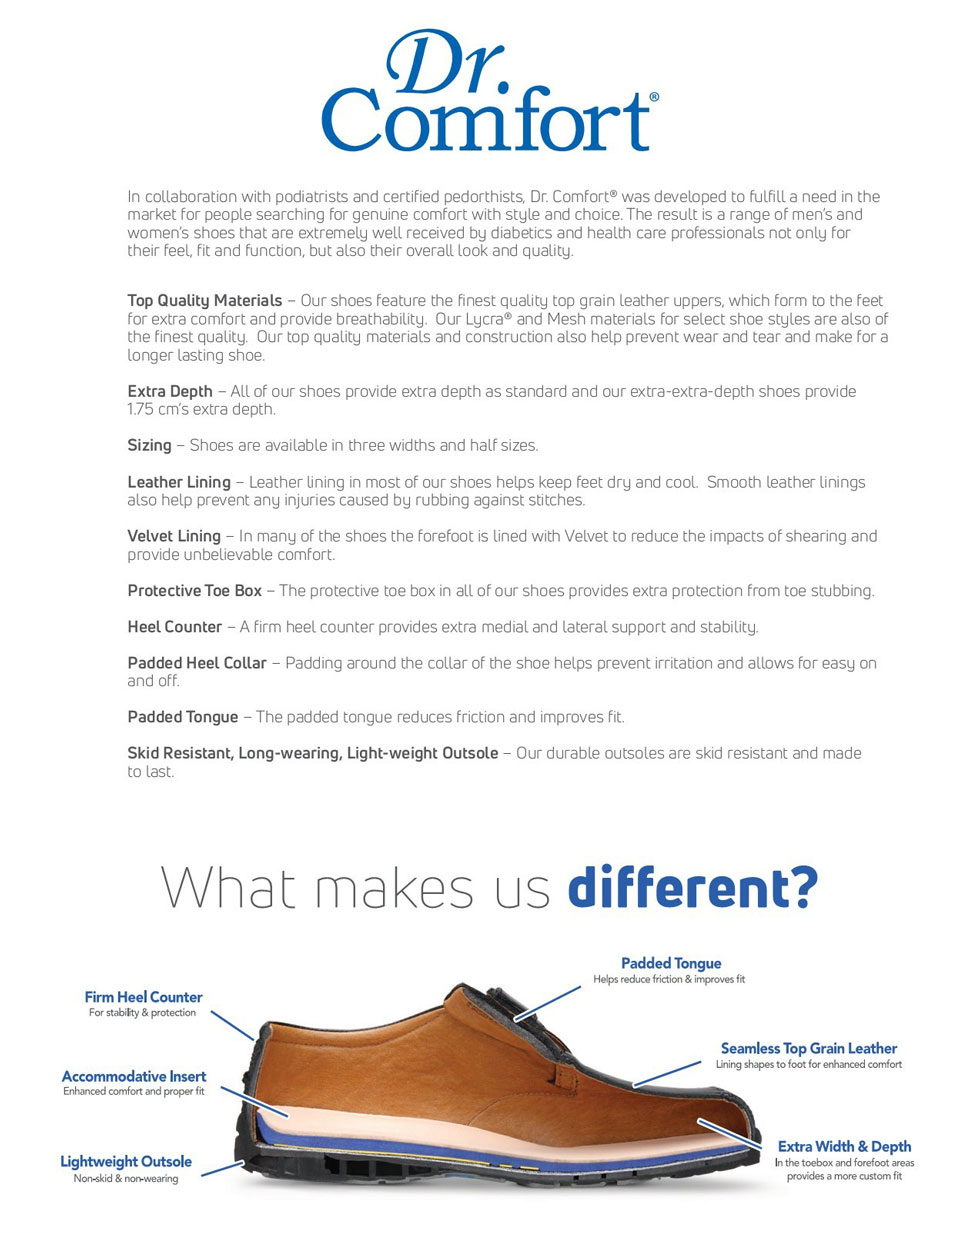 Dr Comfort Difference